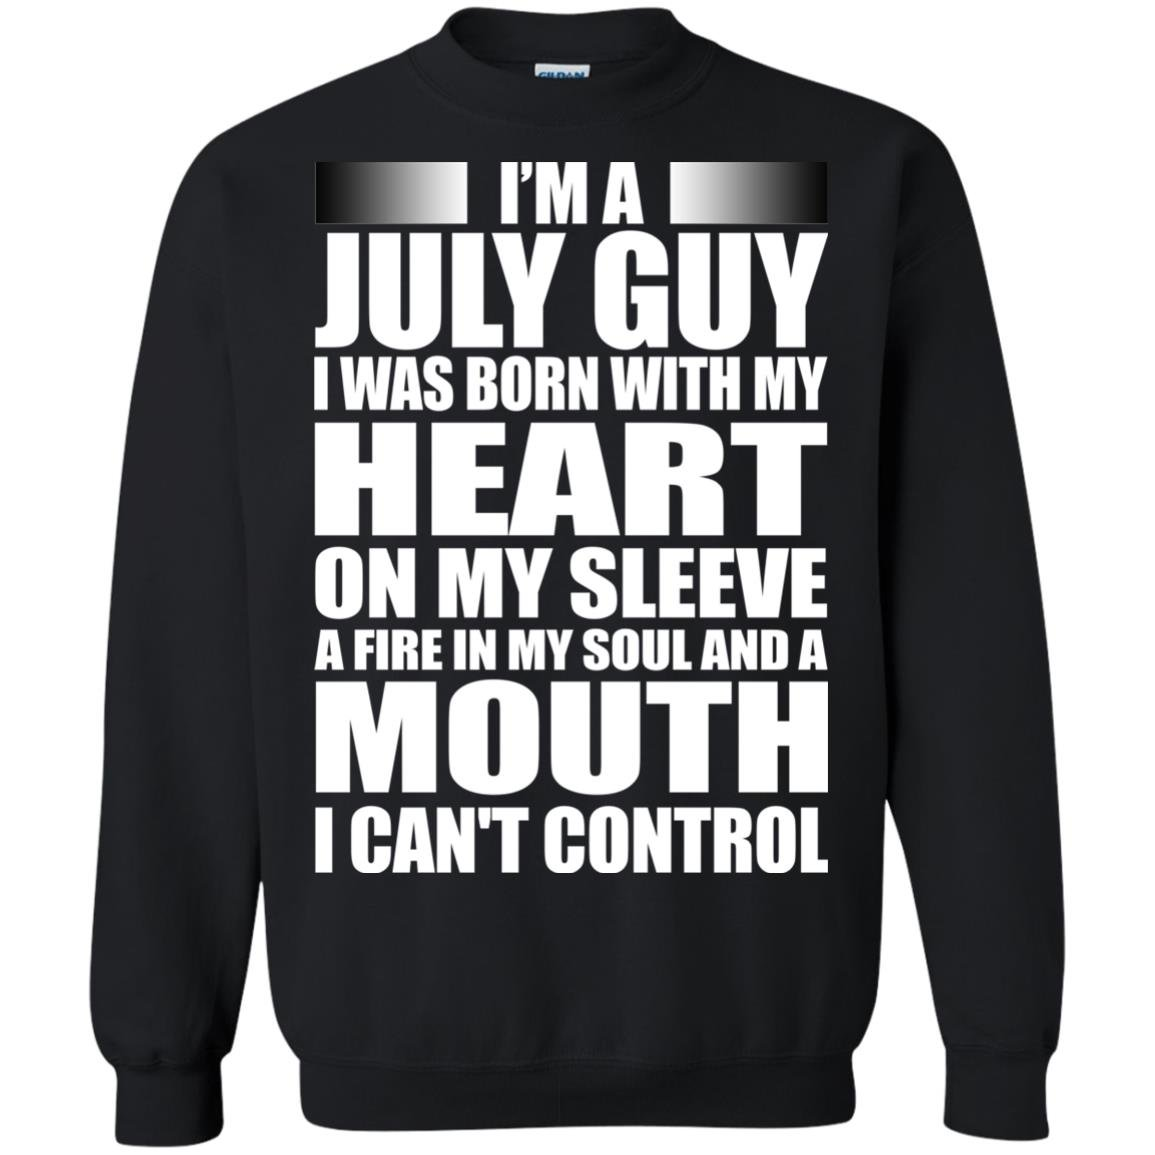 image 917 - I'm a July guy I was born with my heart on my sleeve shirt, hoodie, tank